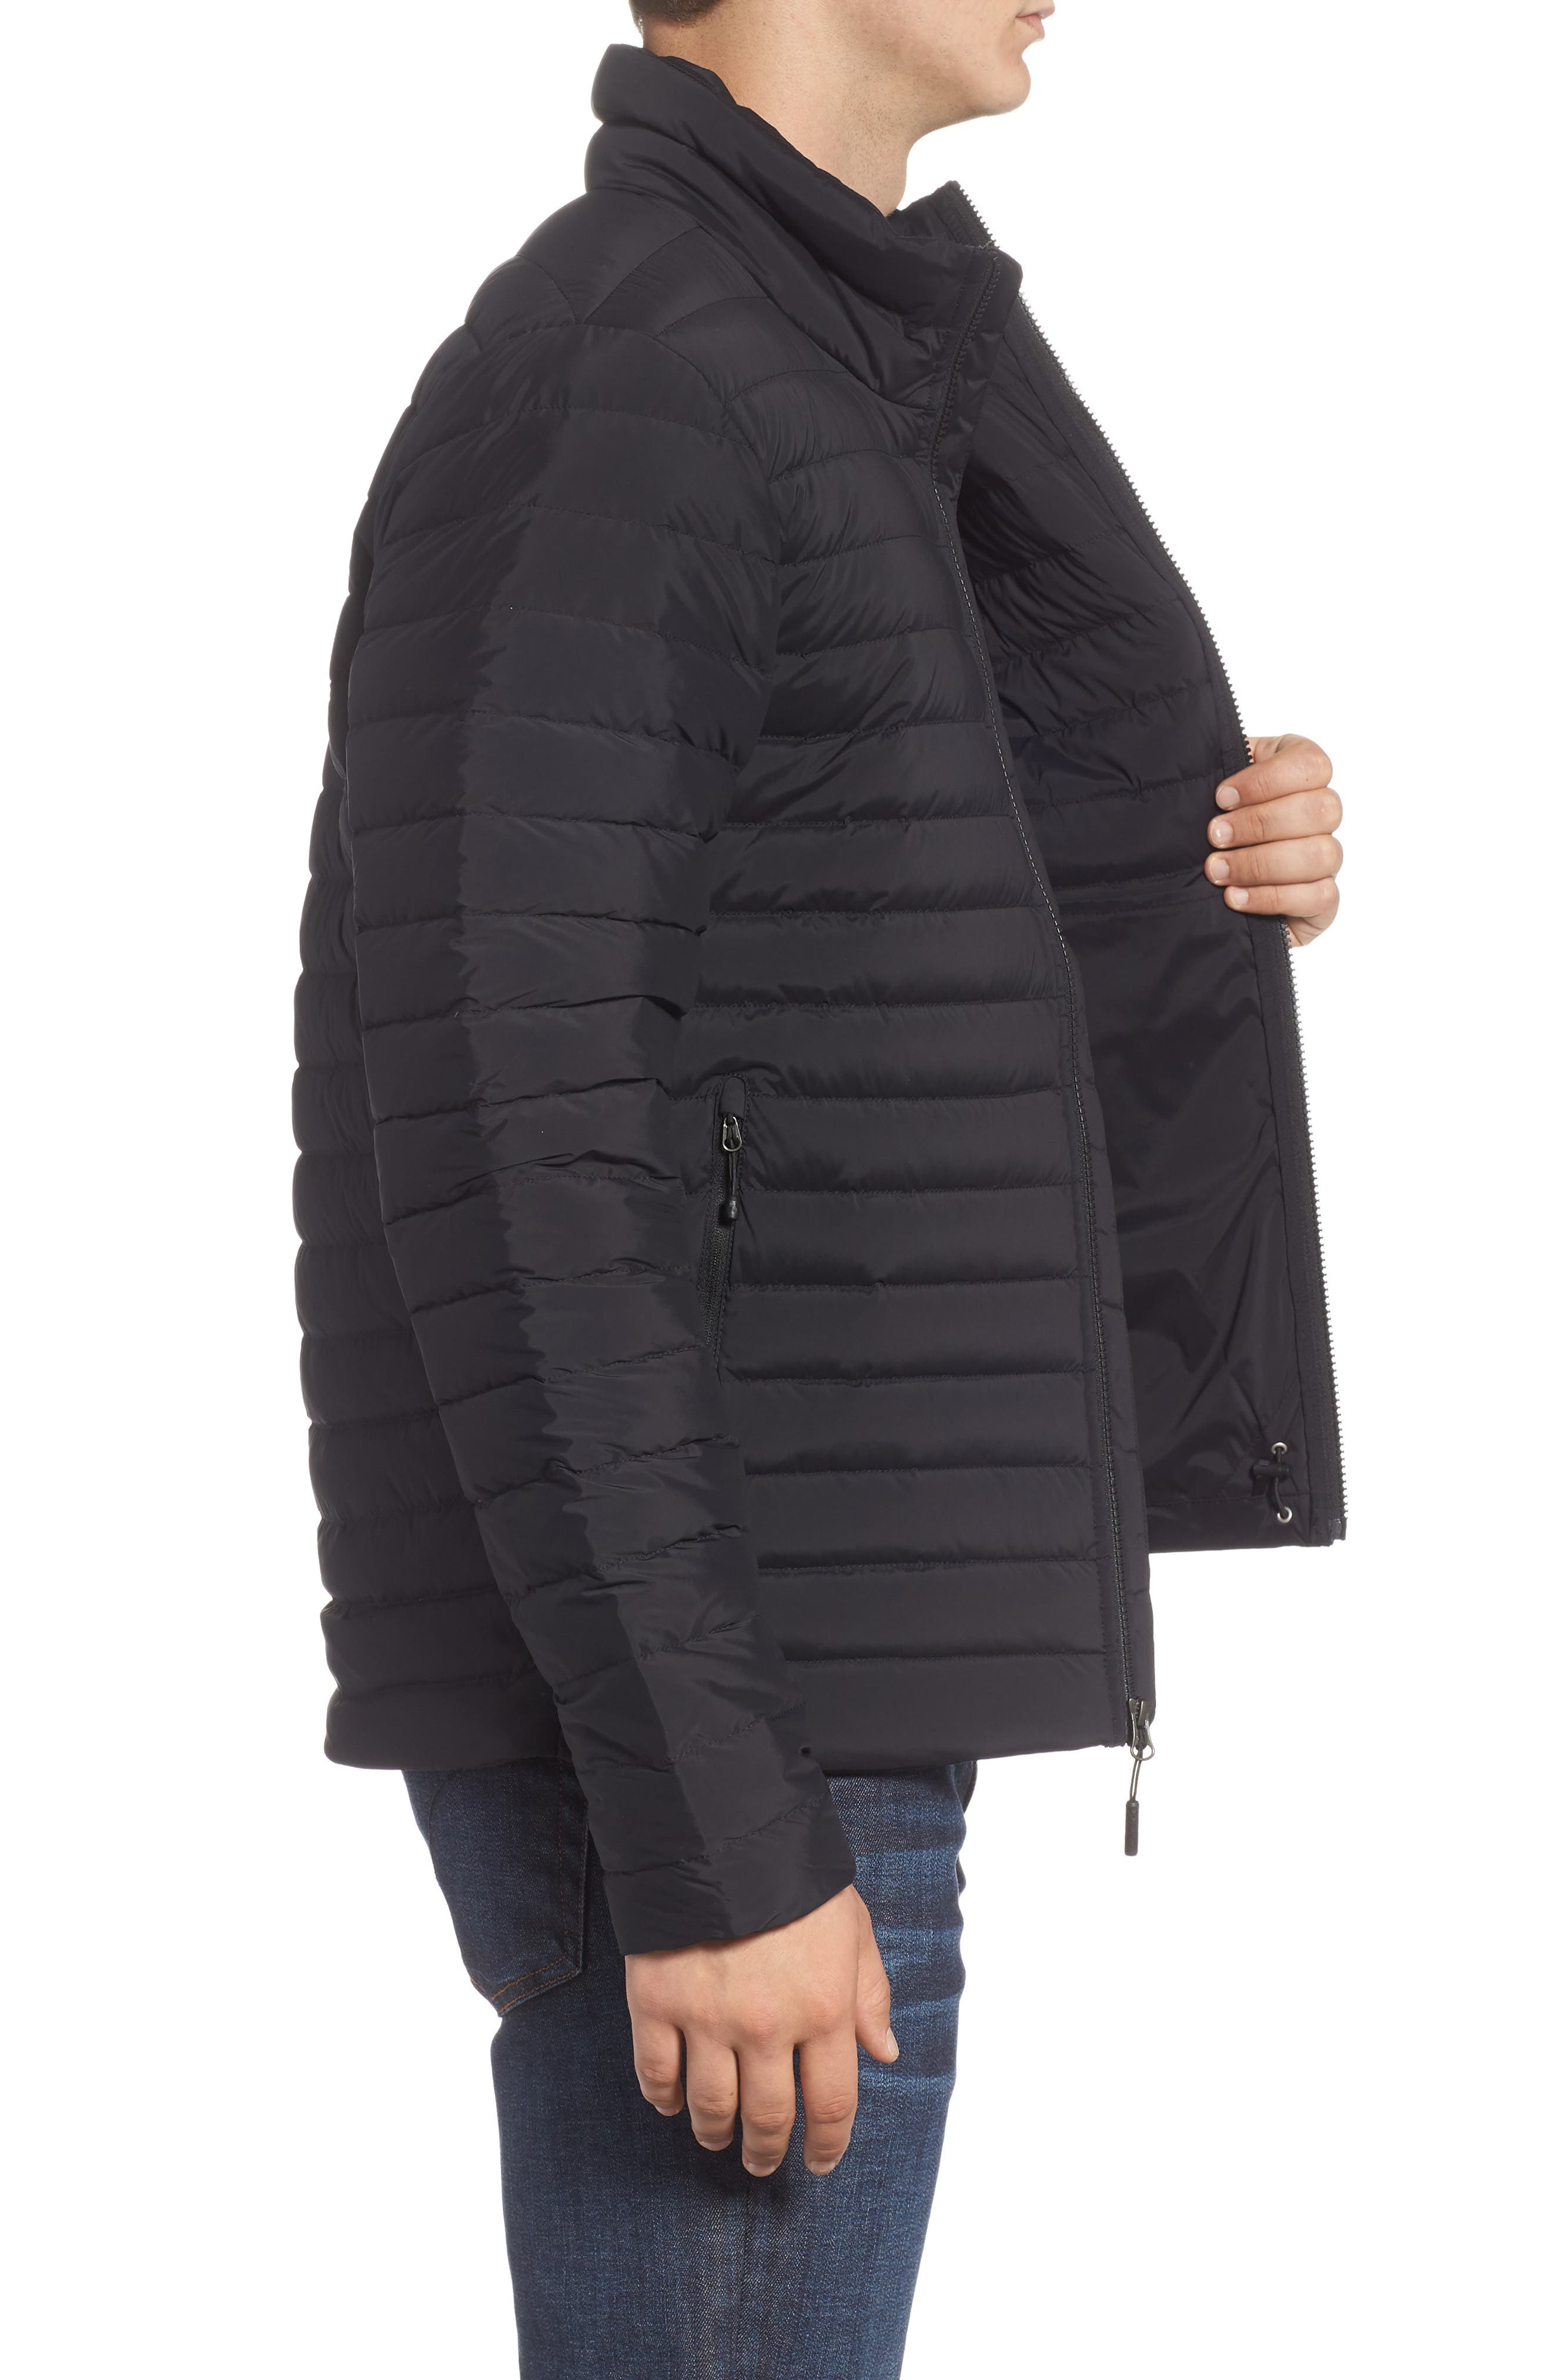 THE NORTH FACE, Packable Stretch Down Jacket, Alternate thumbnail 4, color, 001